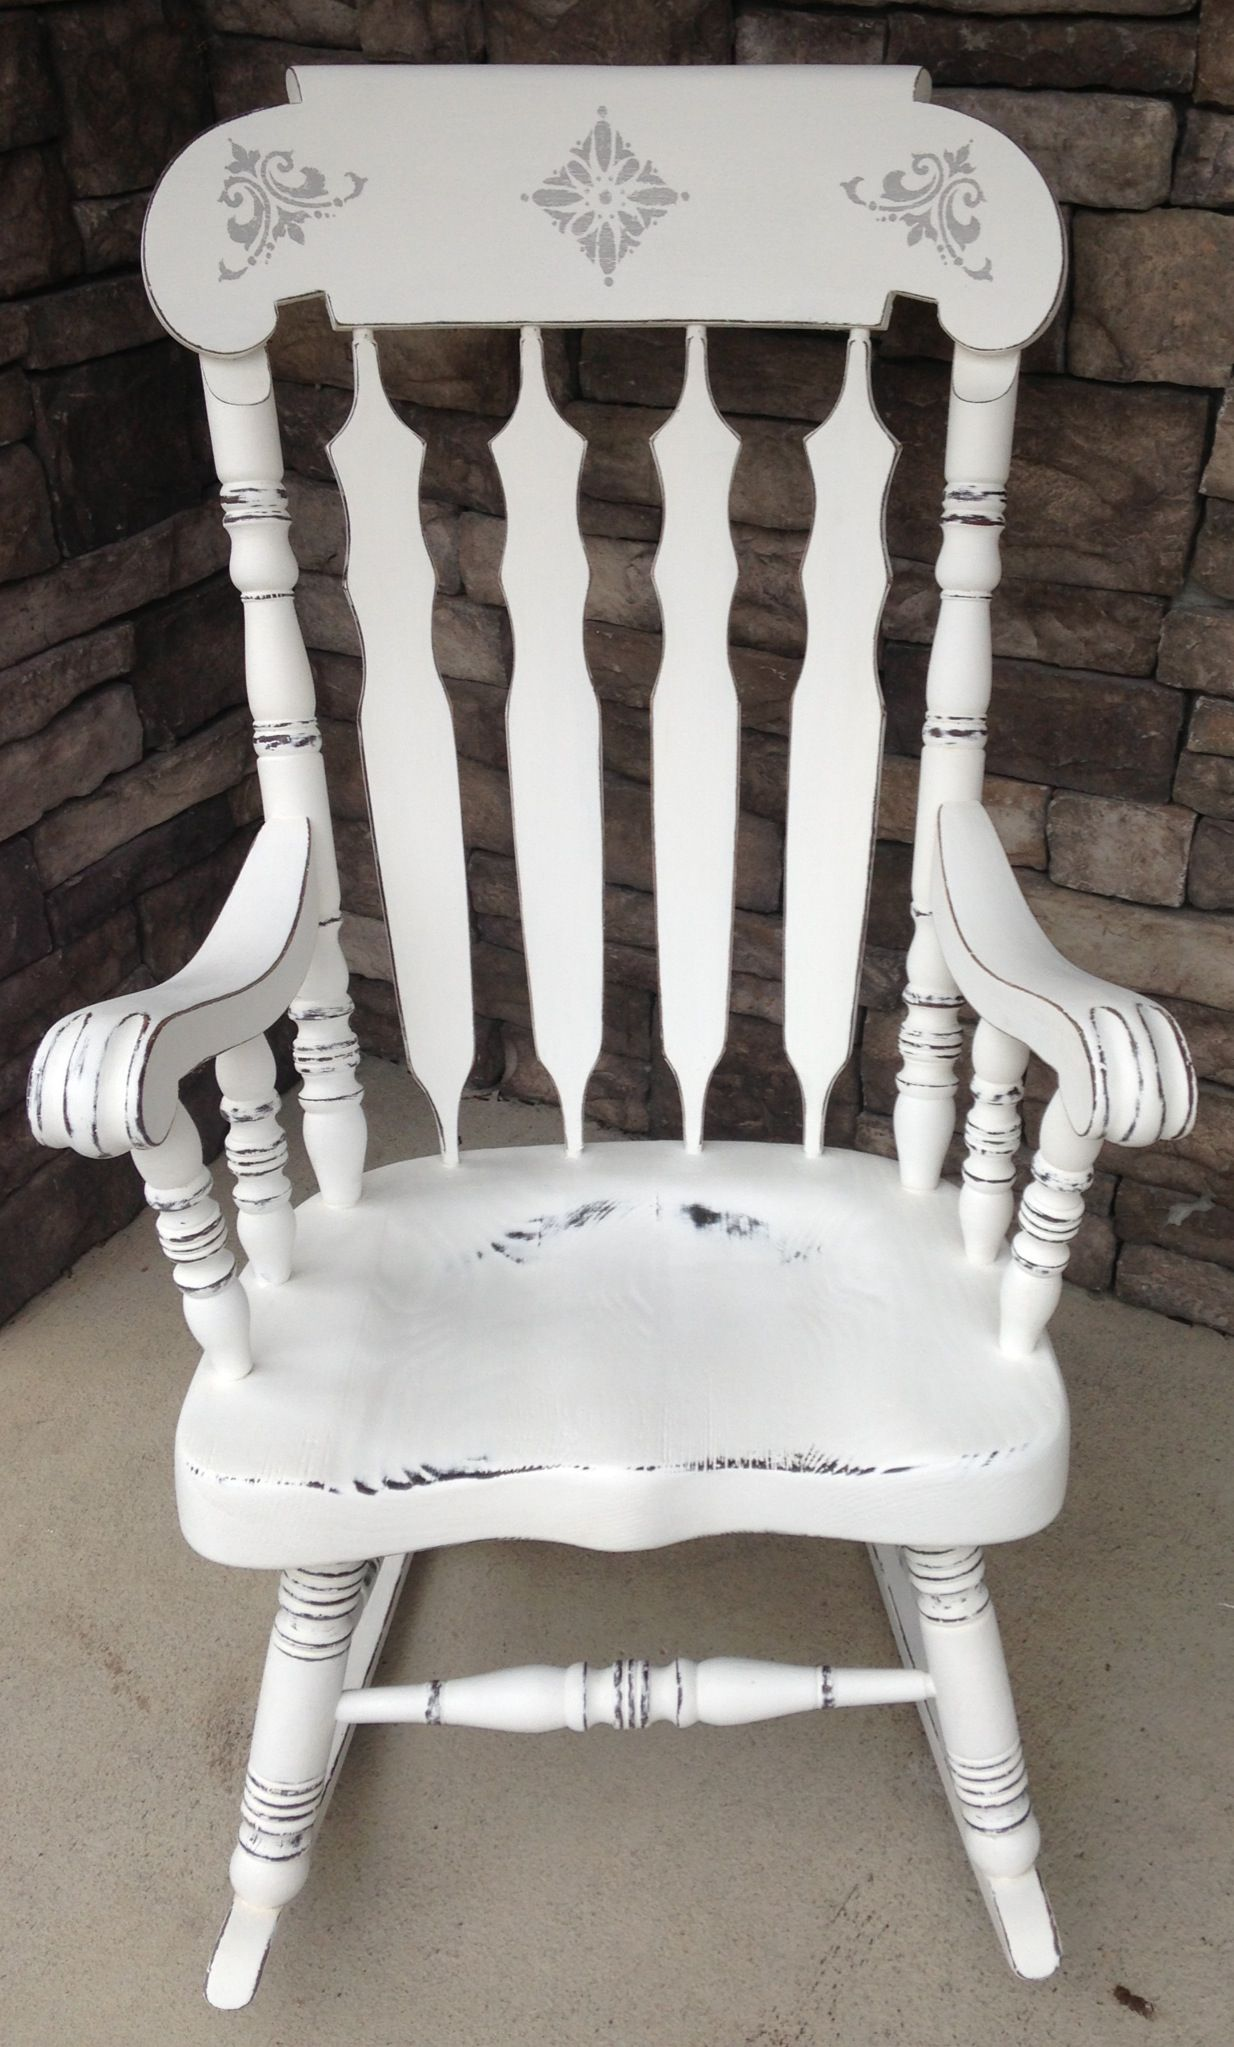 Amazing Refinished Rocking Chair! Done In Ann Sloanu0027s Pure White Chalk  Paint :) Design Done In Paris Grey Chalk Paint Also By Ann Sloan.